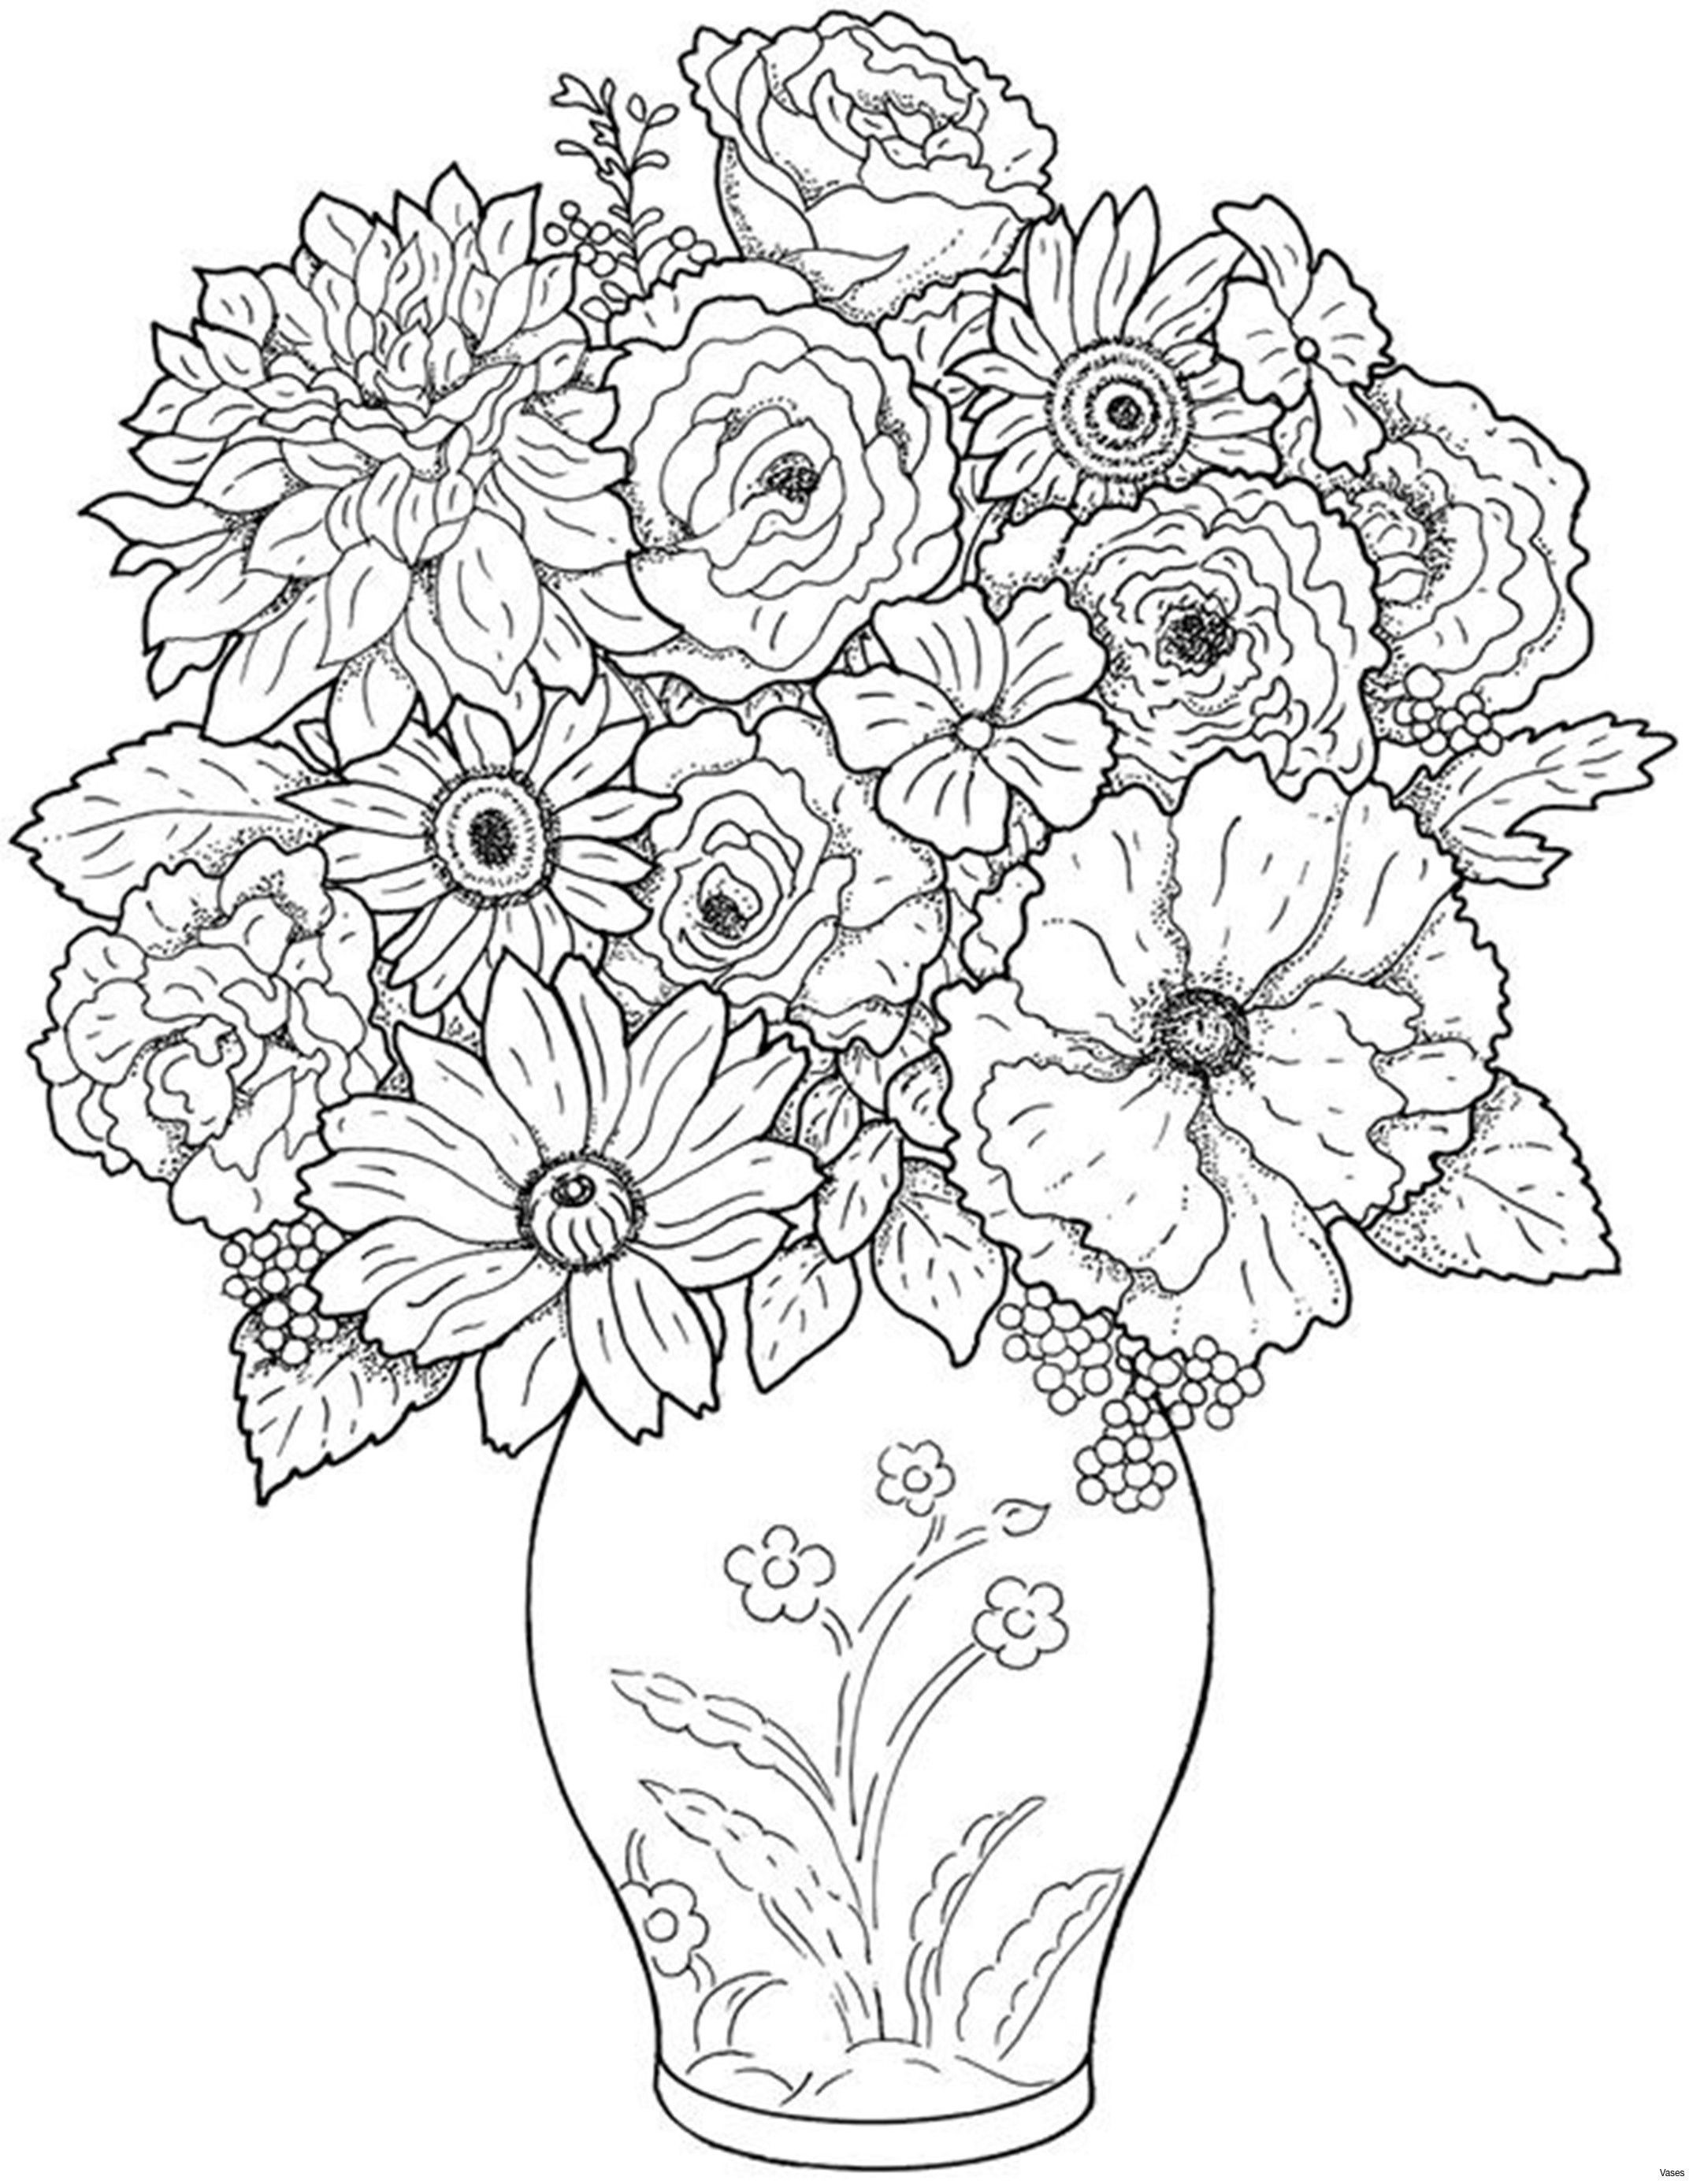 antique gold flower vase of 50 black and gold vase the weekly world for cool vases flower vase coloring page pages flowers in a top i 0d